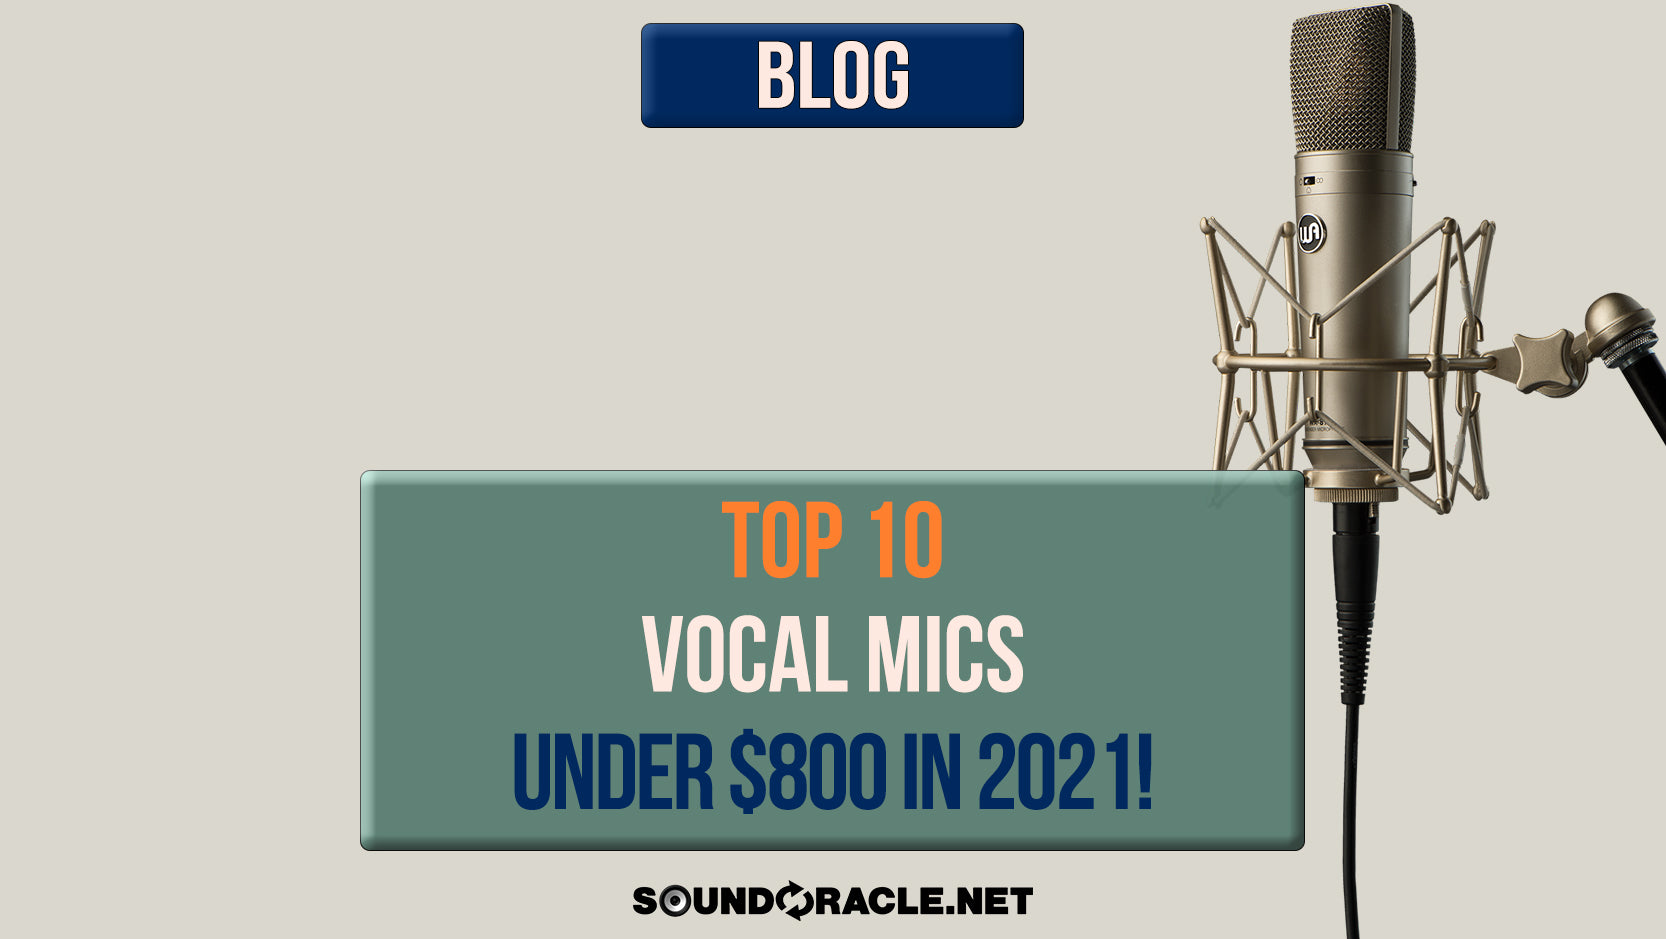 Top 10 Vocal Mics For Under $800 in 2021!